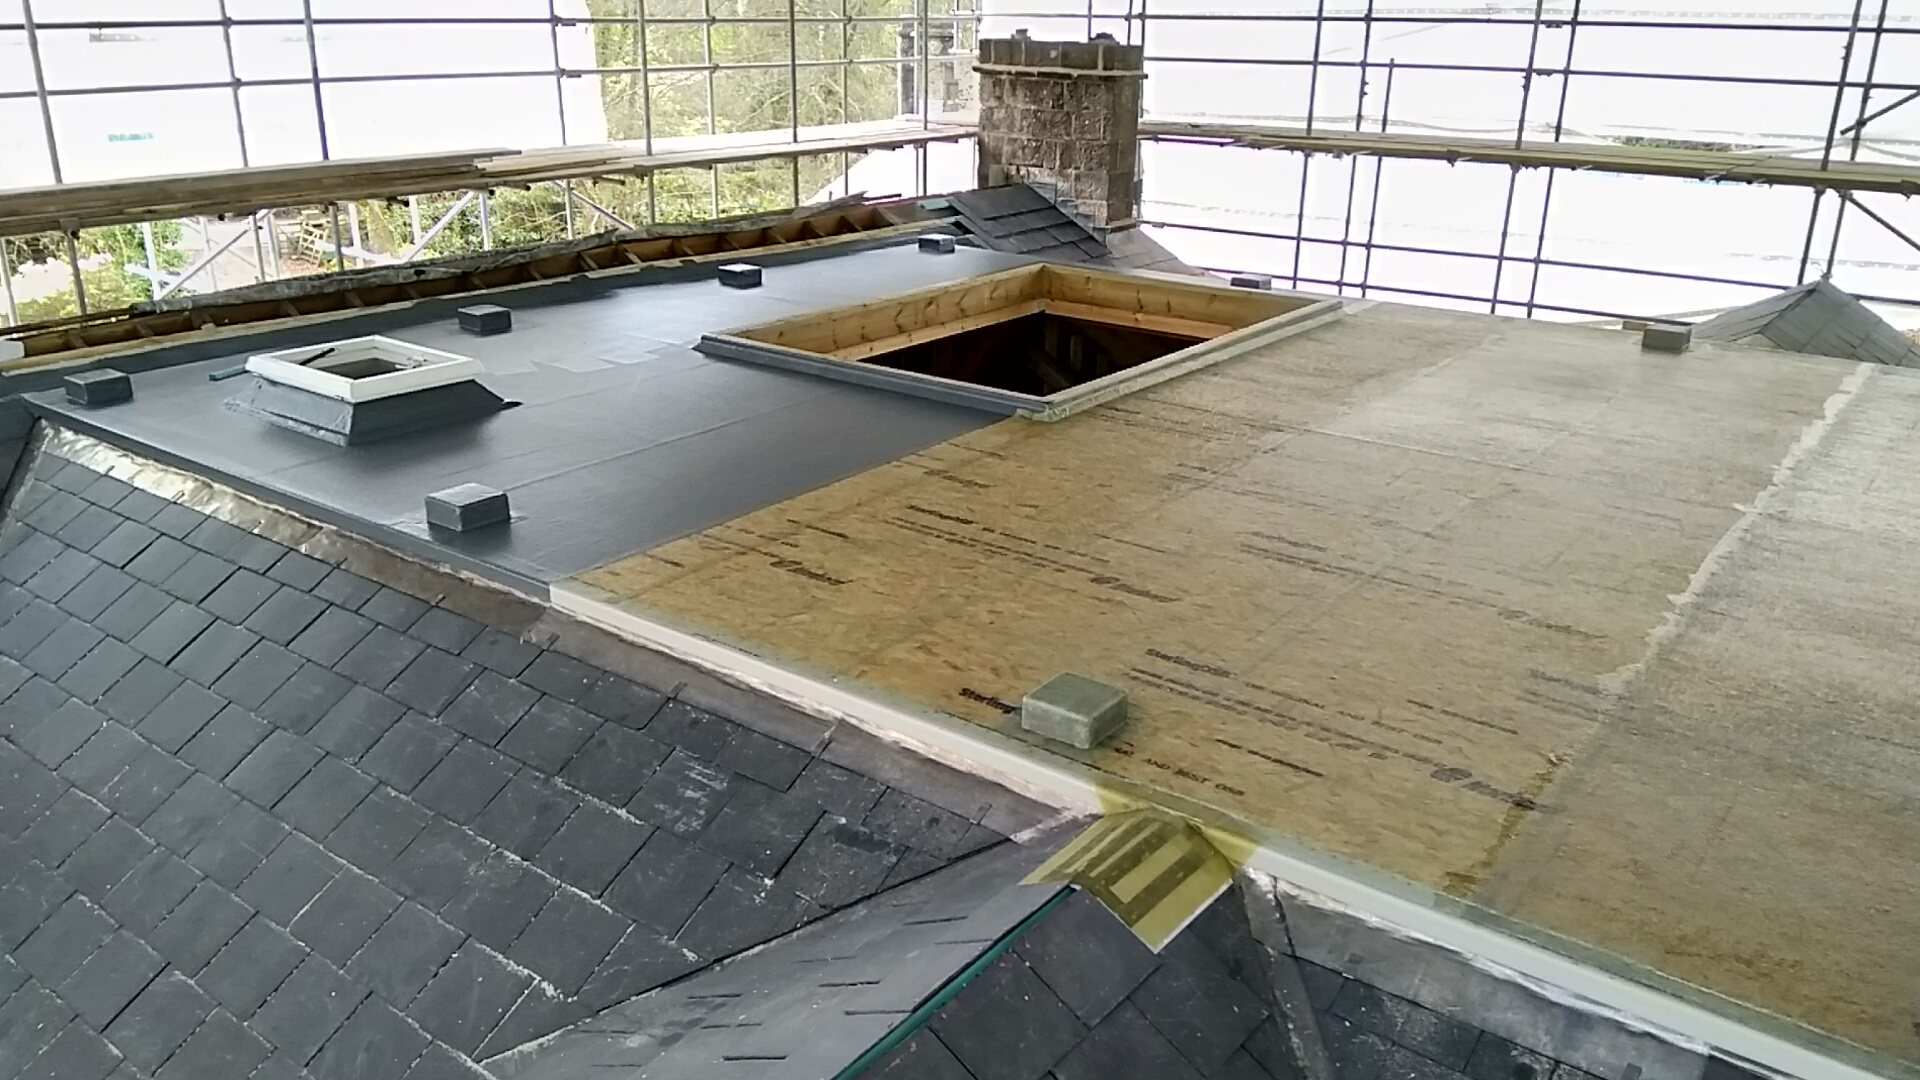 Grp flat roof with fixings for handrail.